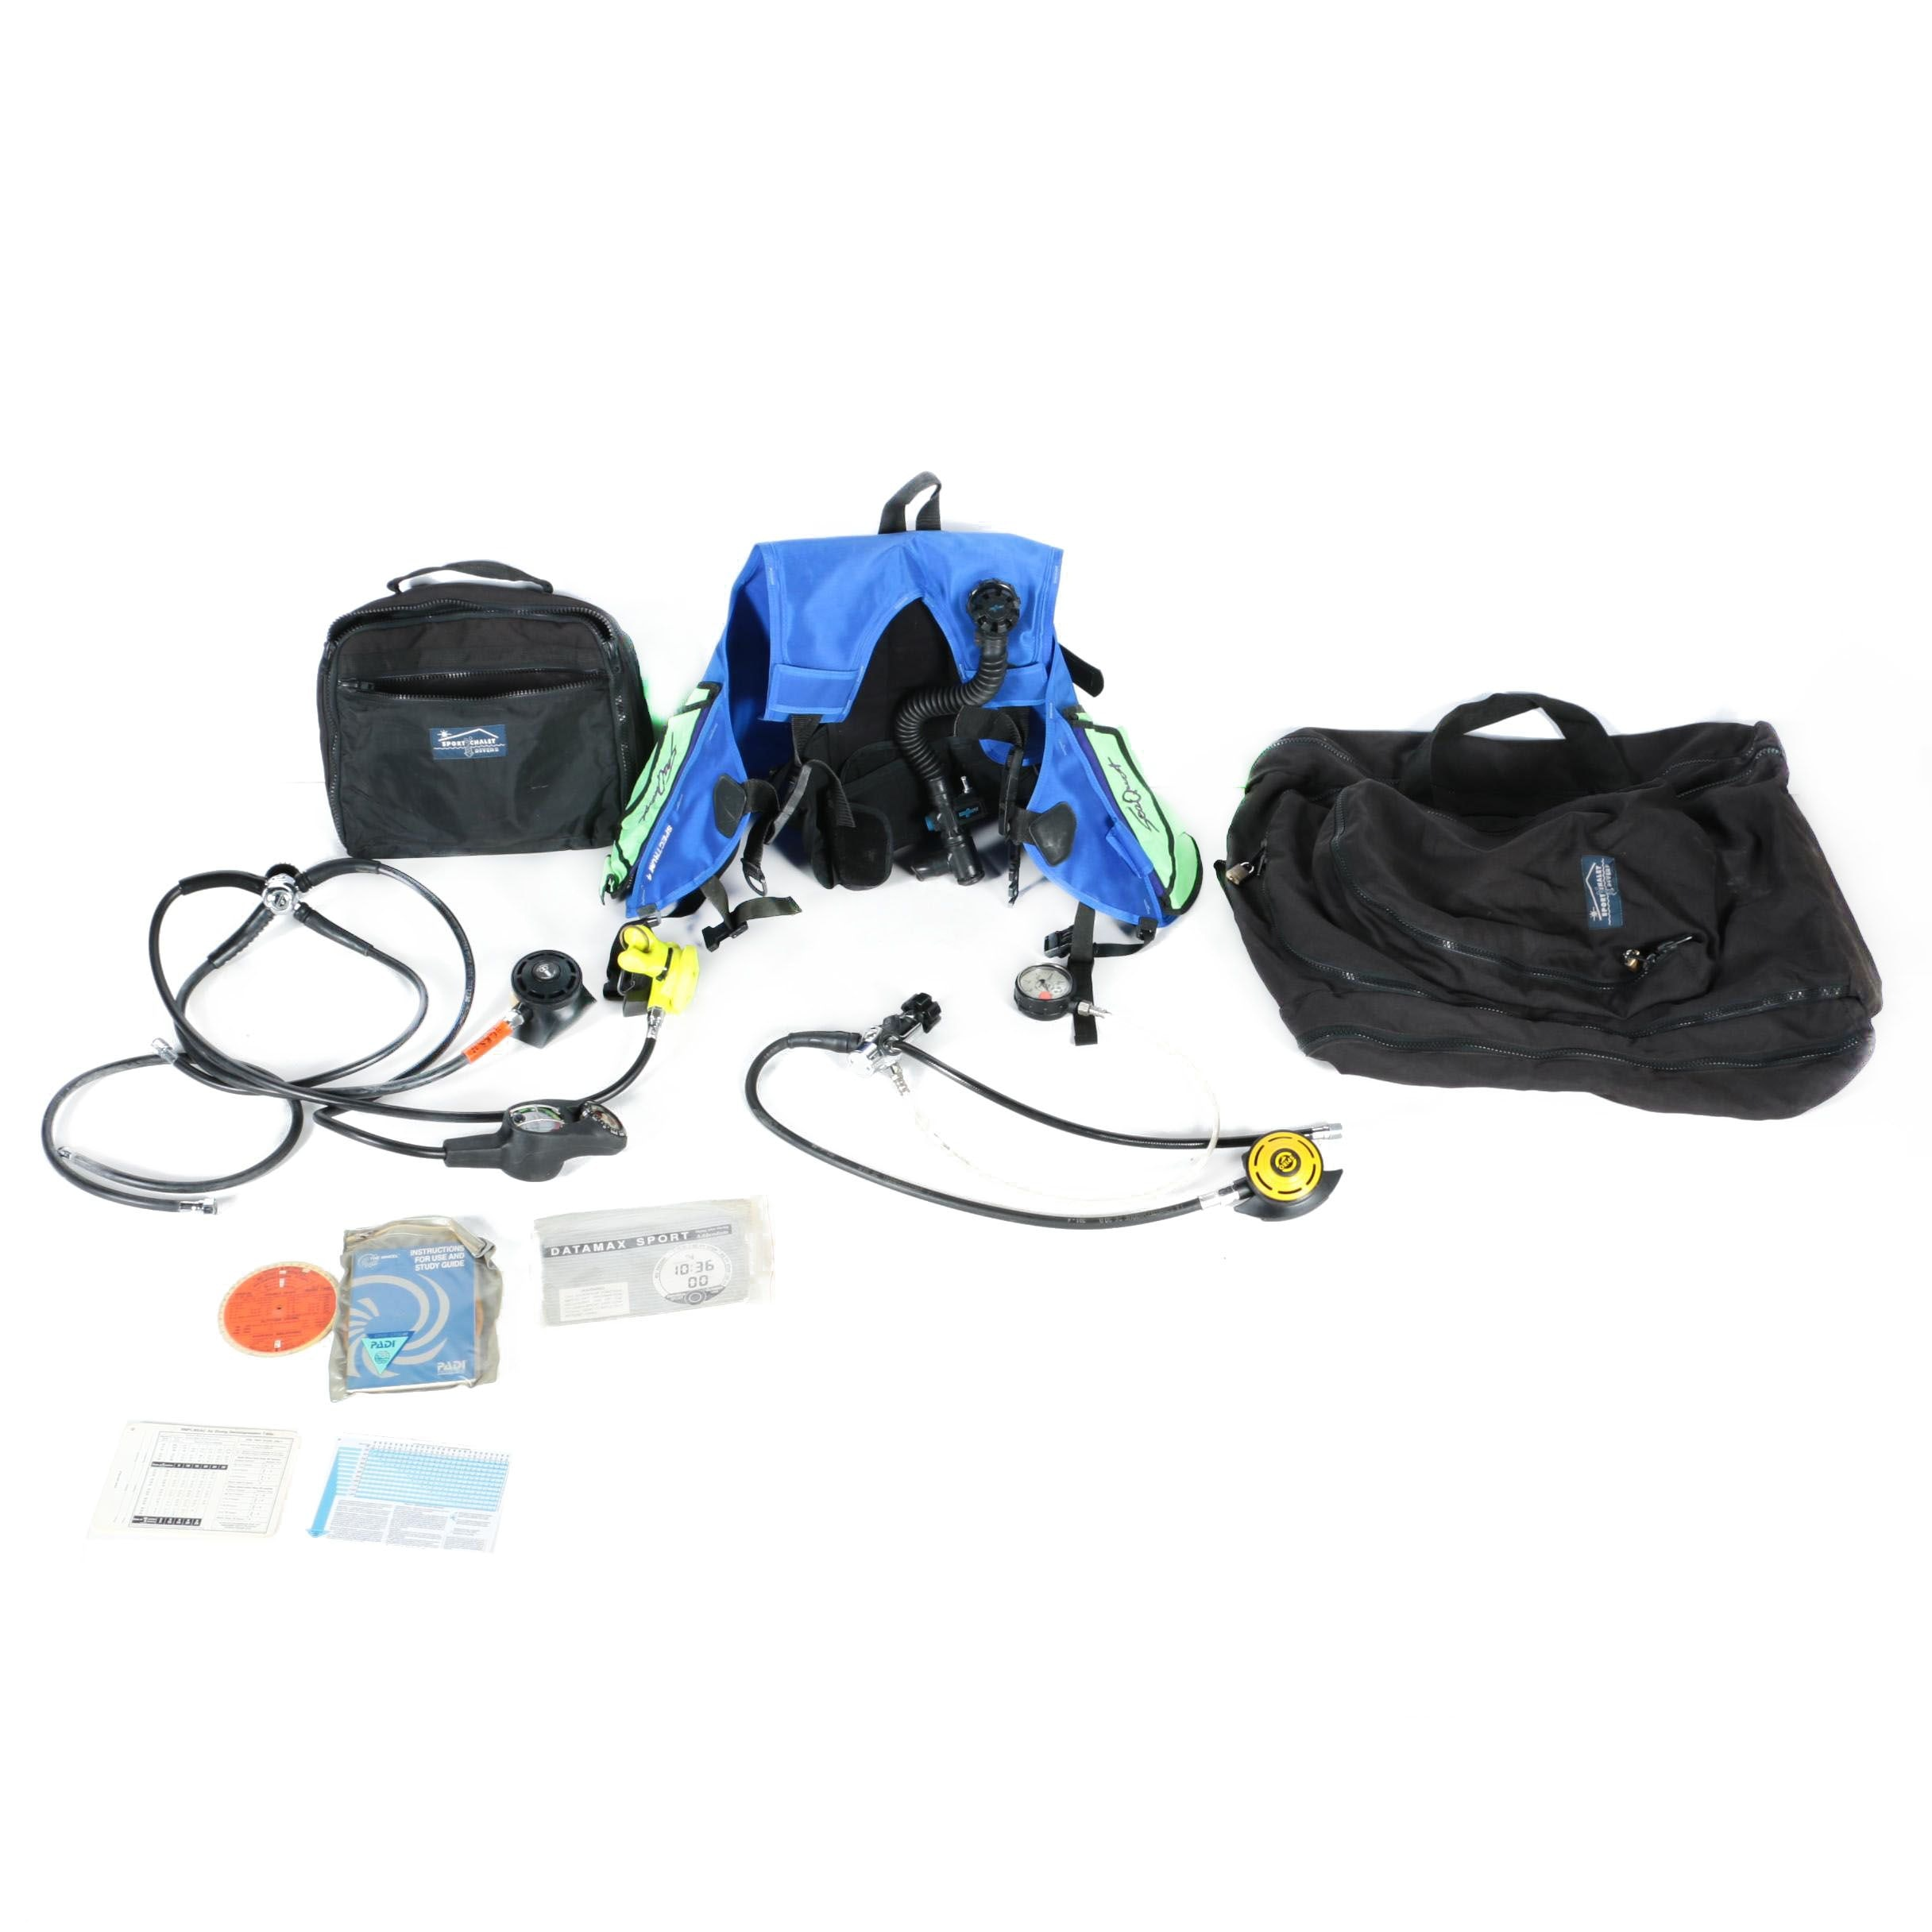 Scuba Gear by SeaQuest, Spiro and More